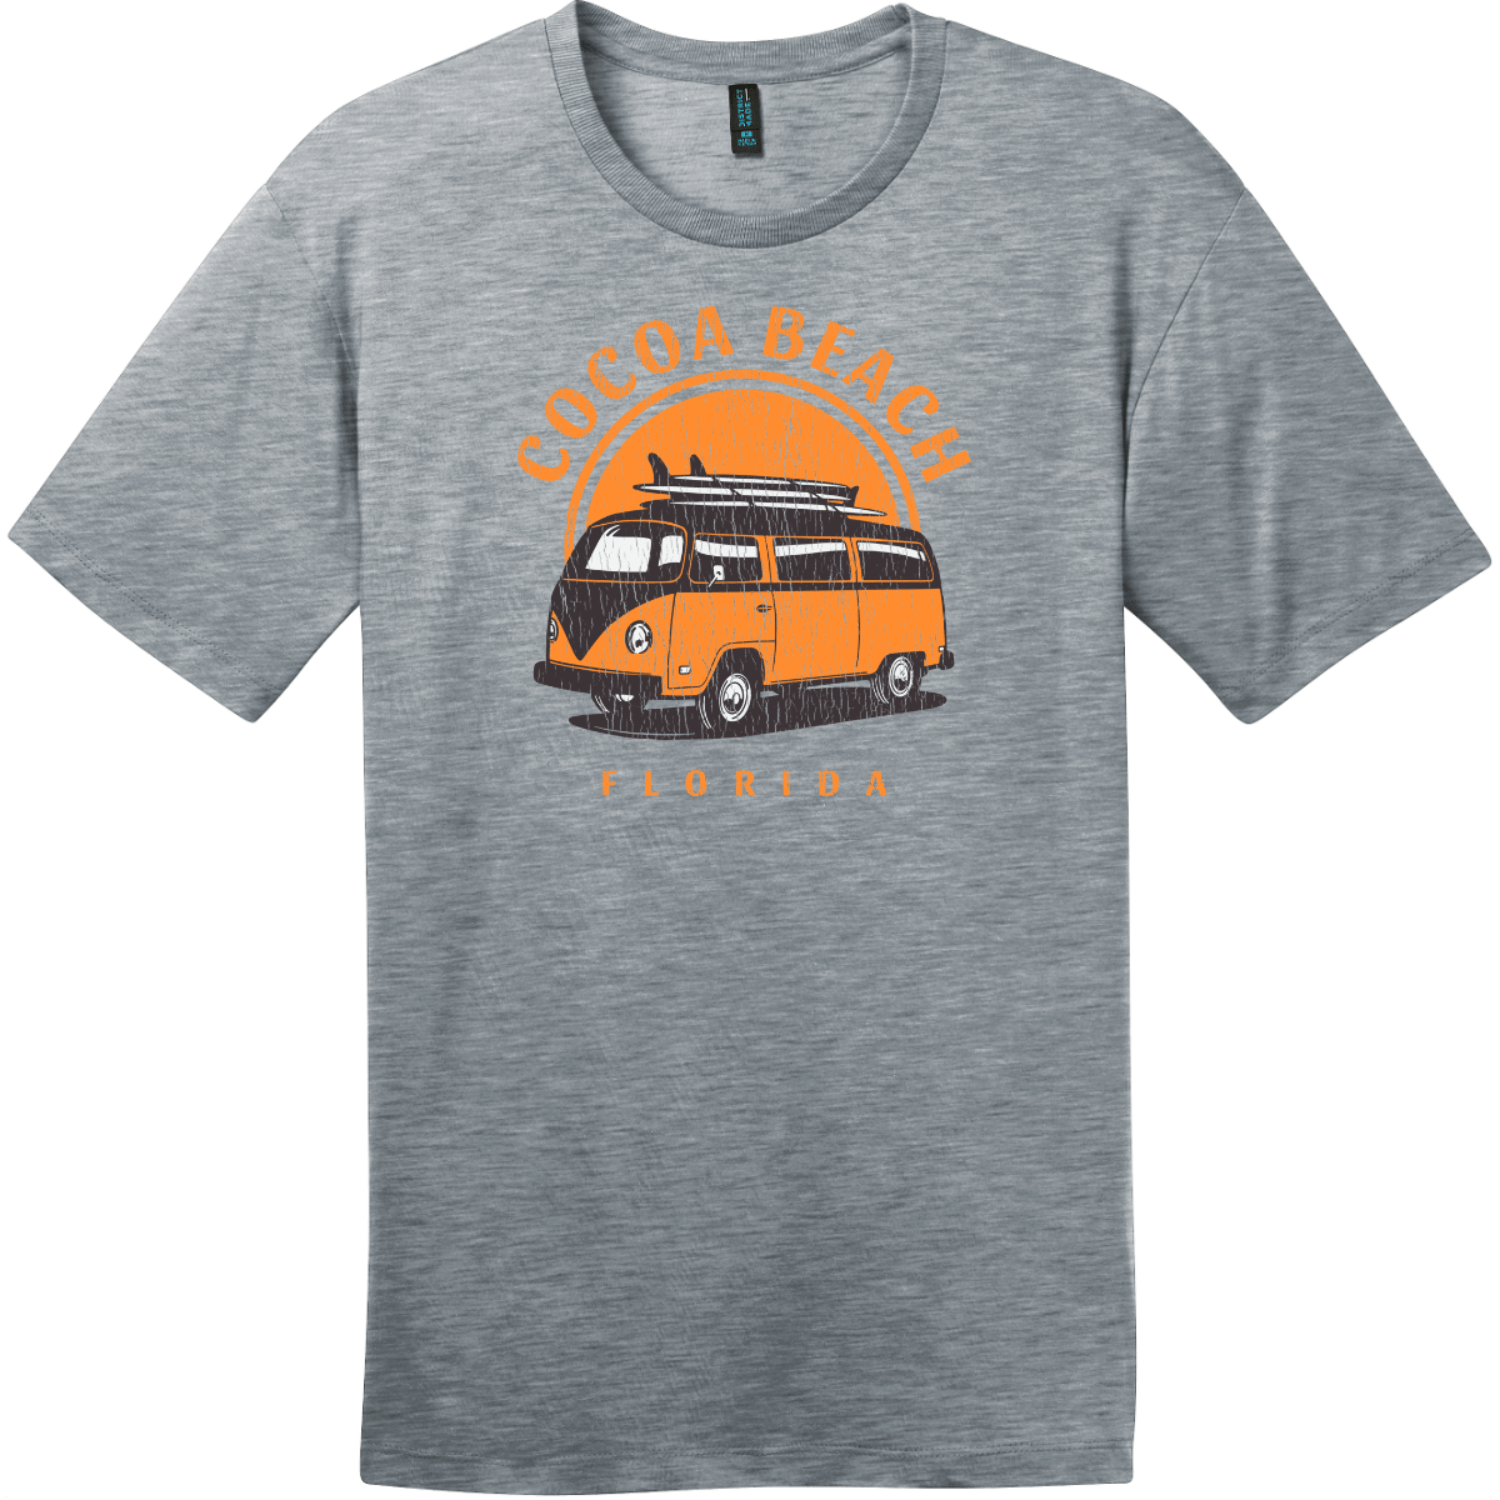 Cocoa Beach Florida Surf Van T-Shirt Heathered Steel District Perfect Weight Tee DT104